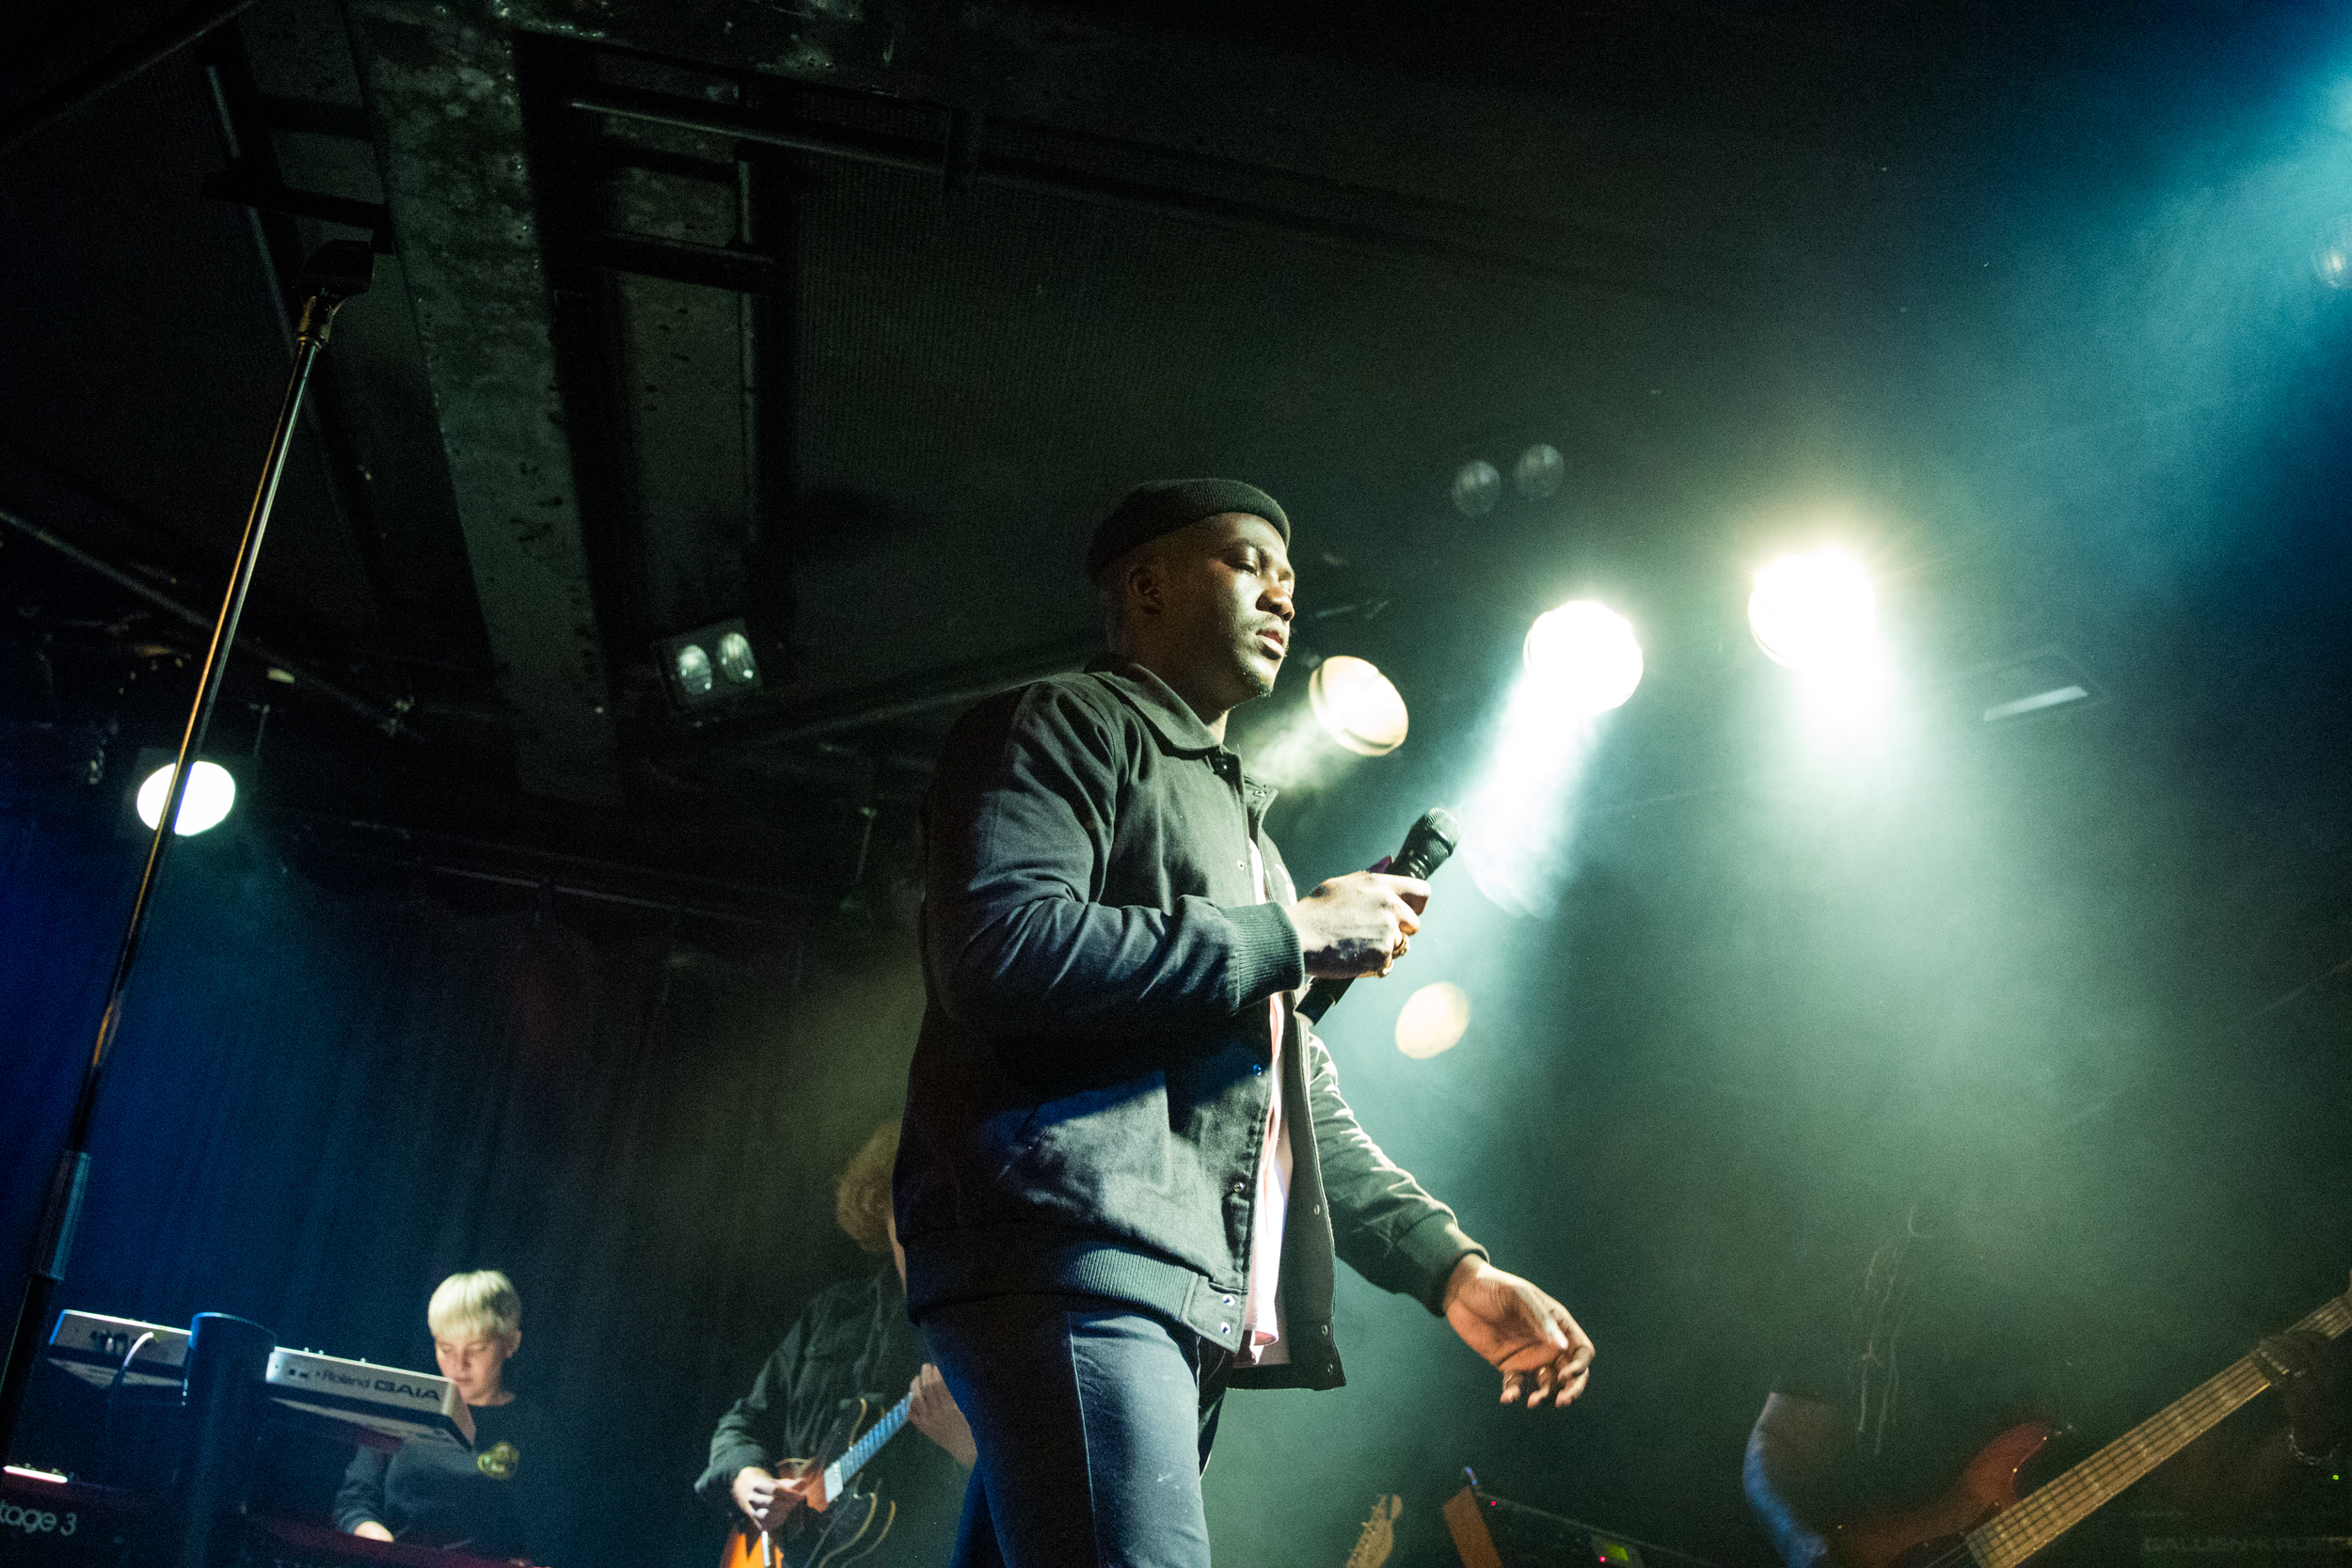 1_JacobBanks_CornerHotel_SarahRix-5979.jpg